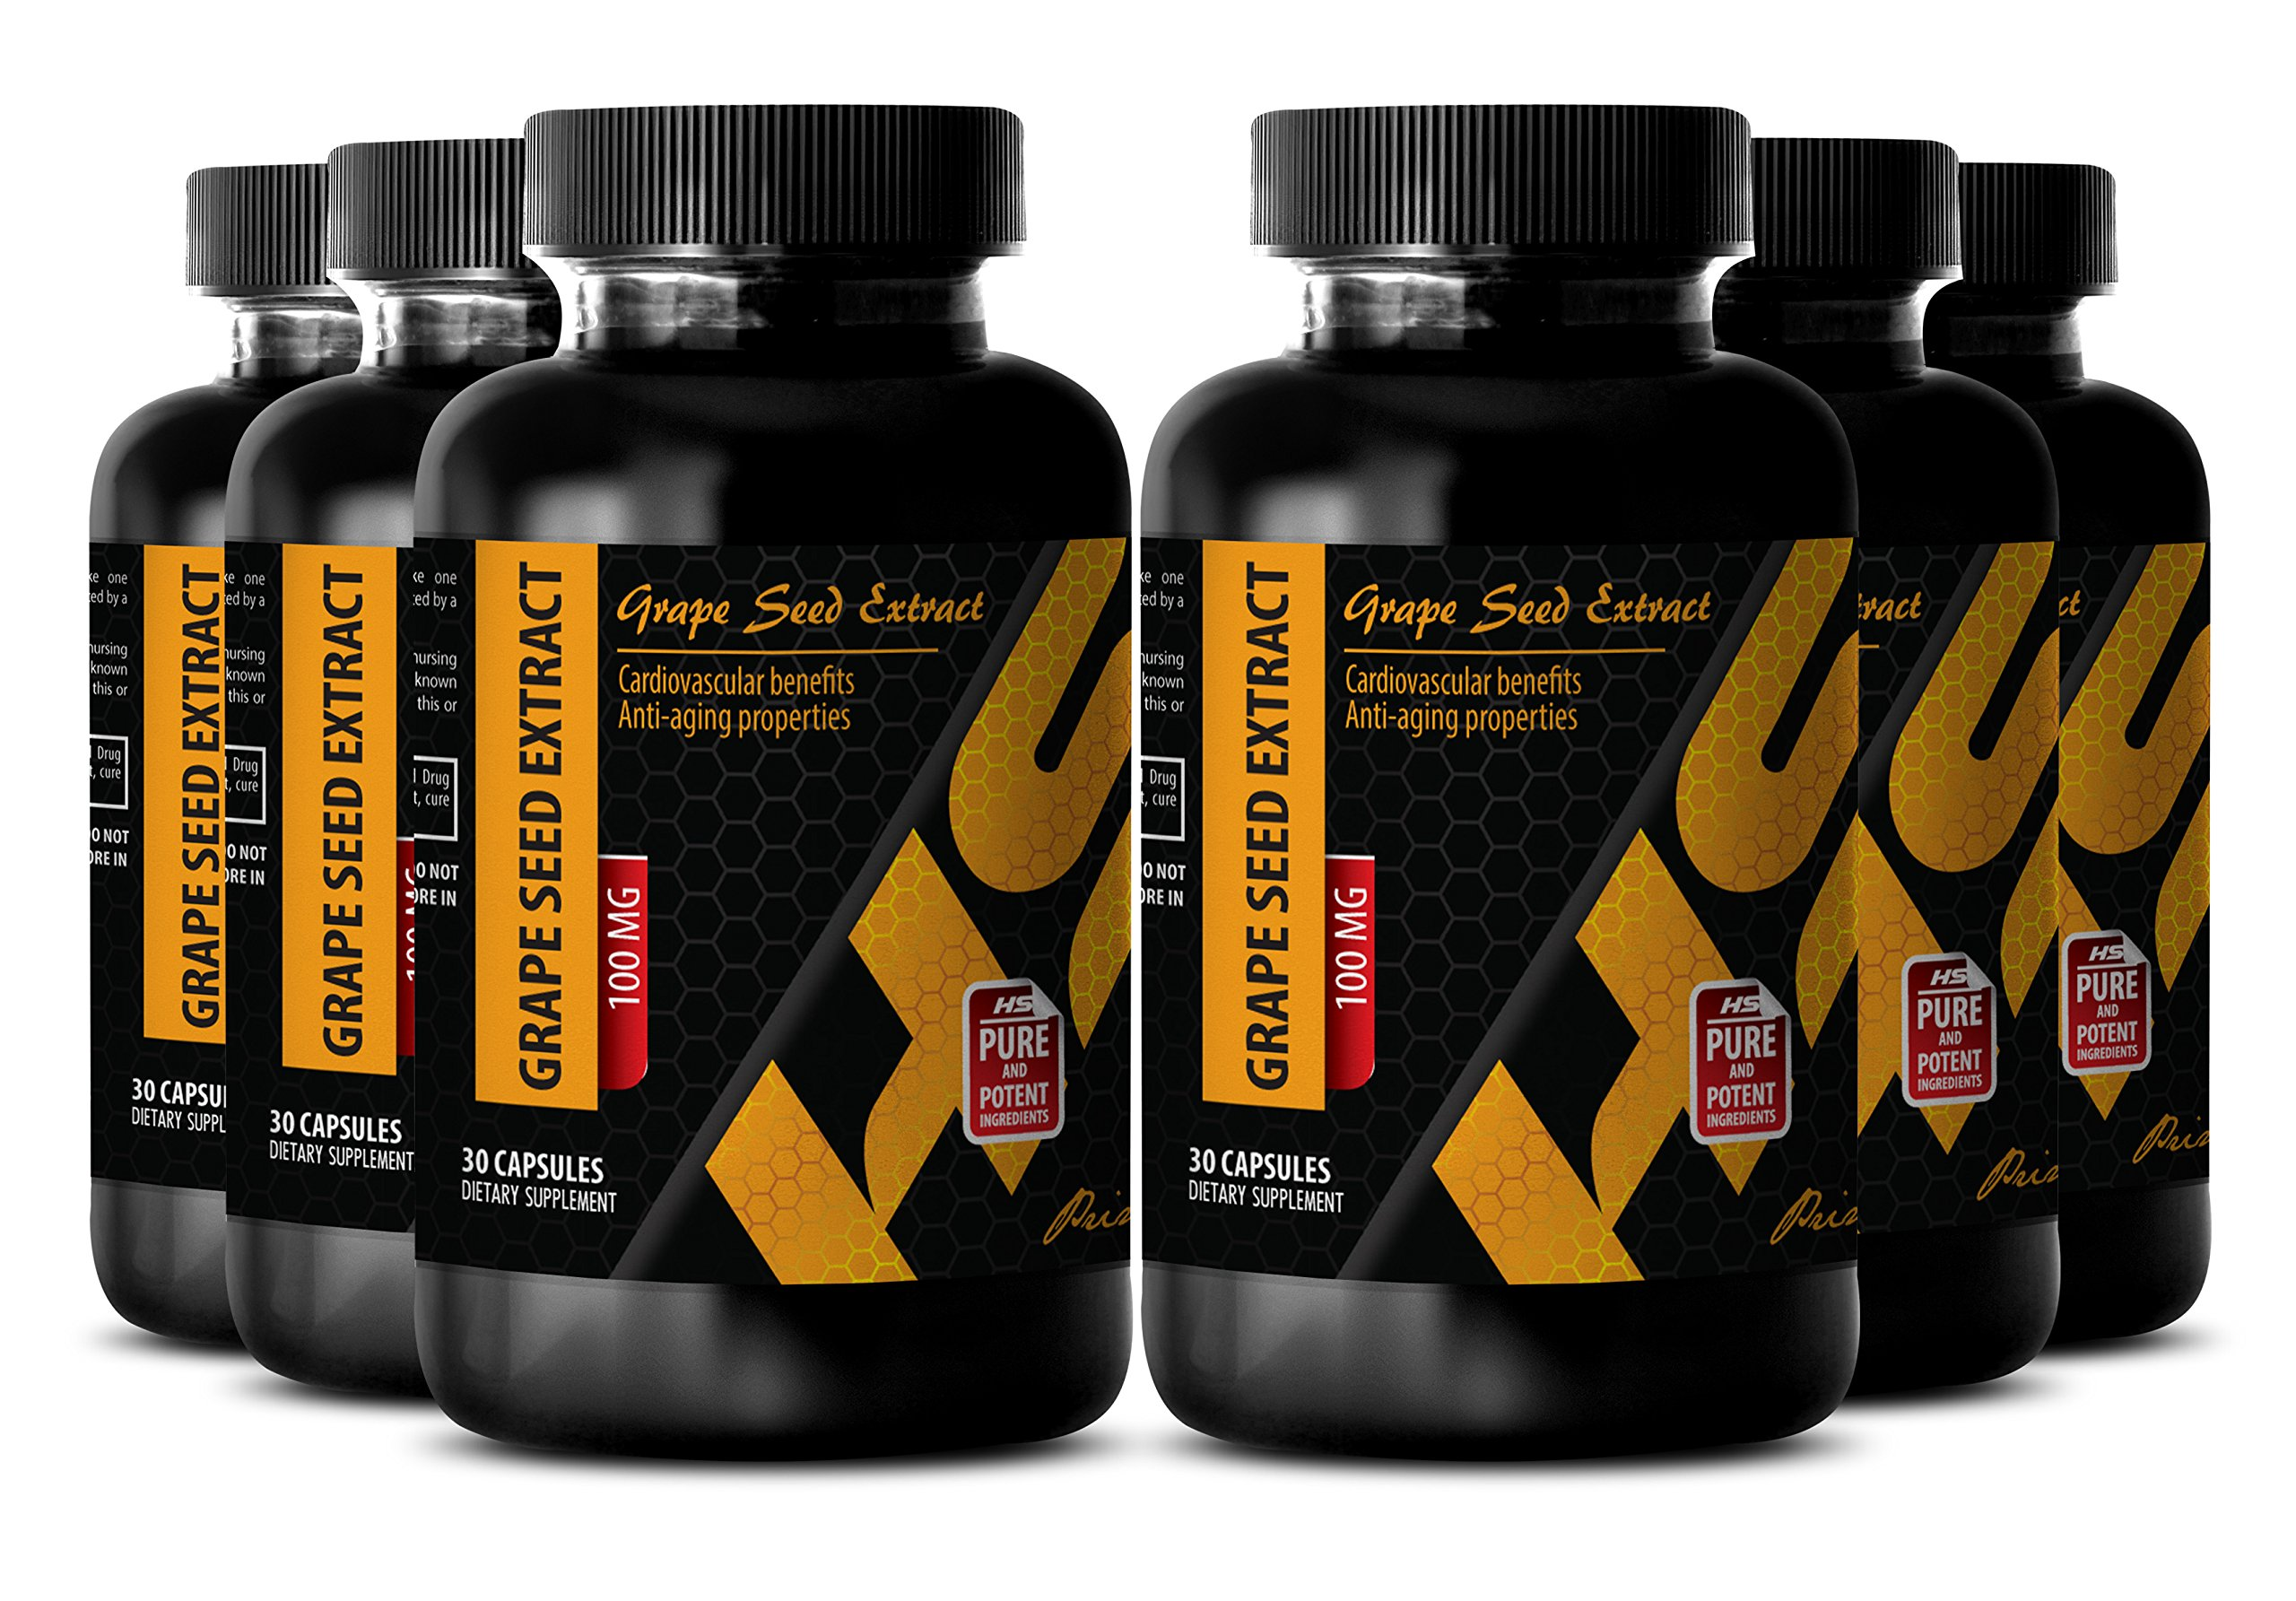 Blood vessels health - PURE GRAPE SEED EXTRACT 100 Mg - Grape seed antifungal supplements - 6 Bottles - 180 Capsules